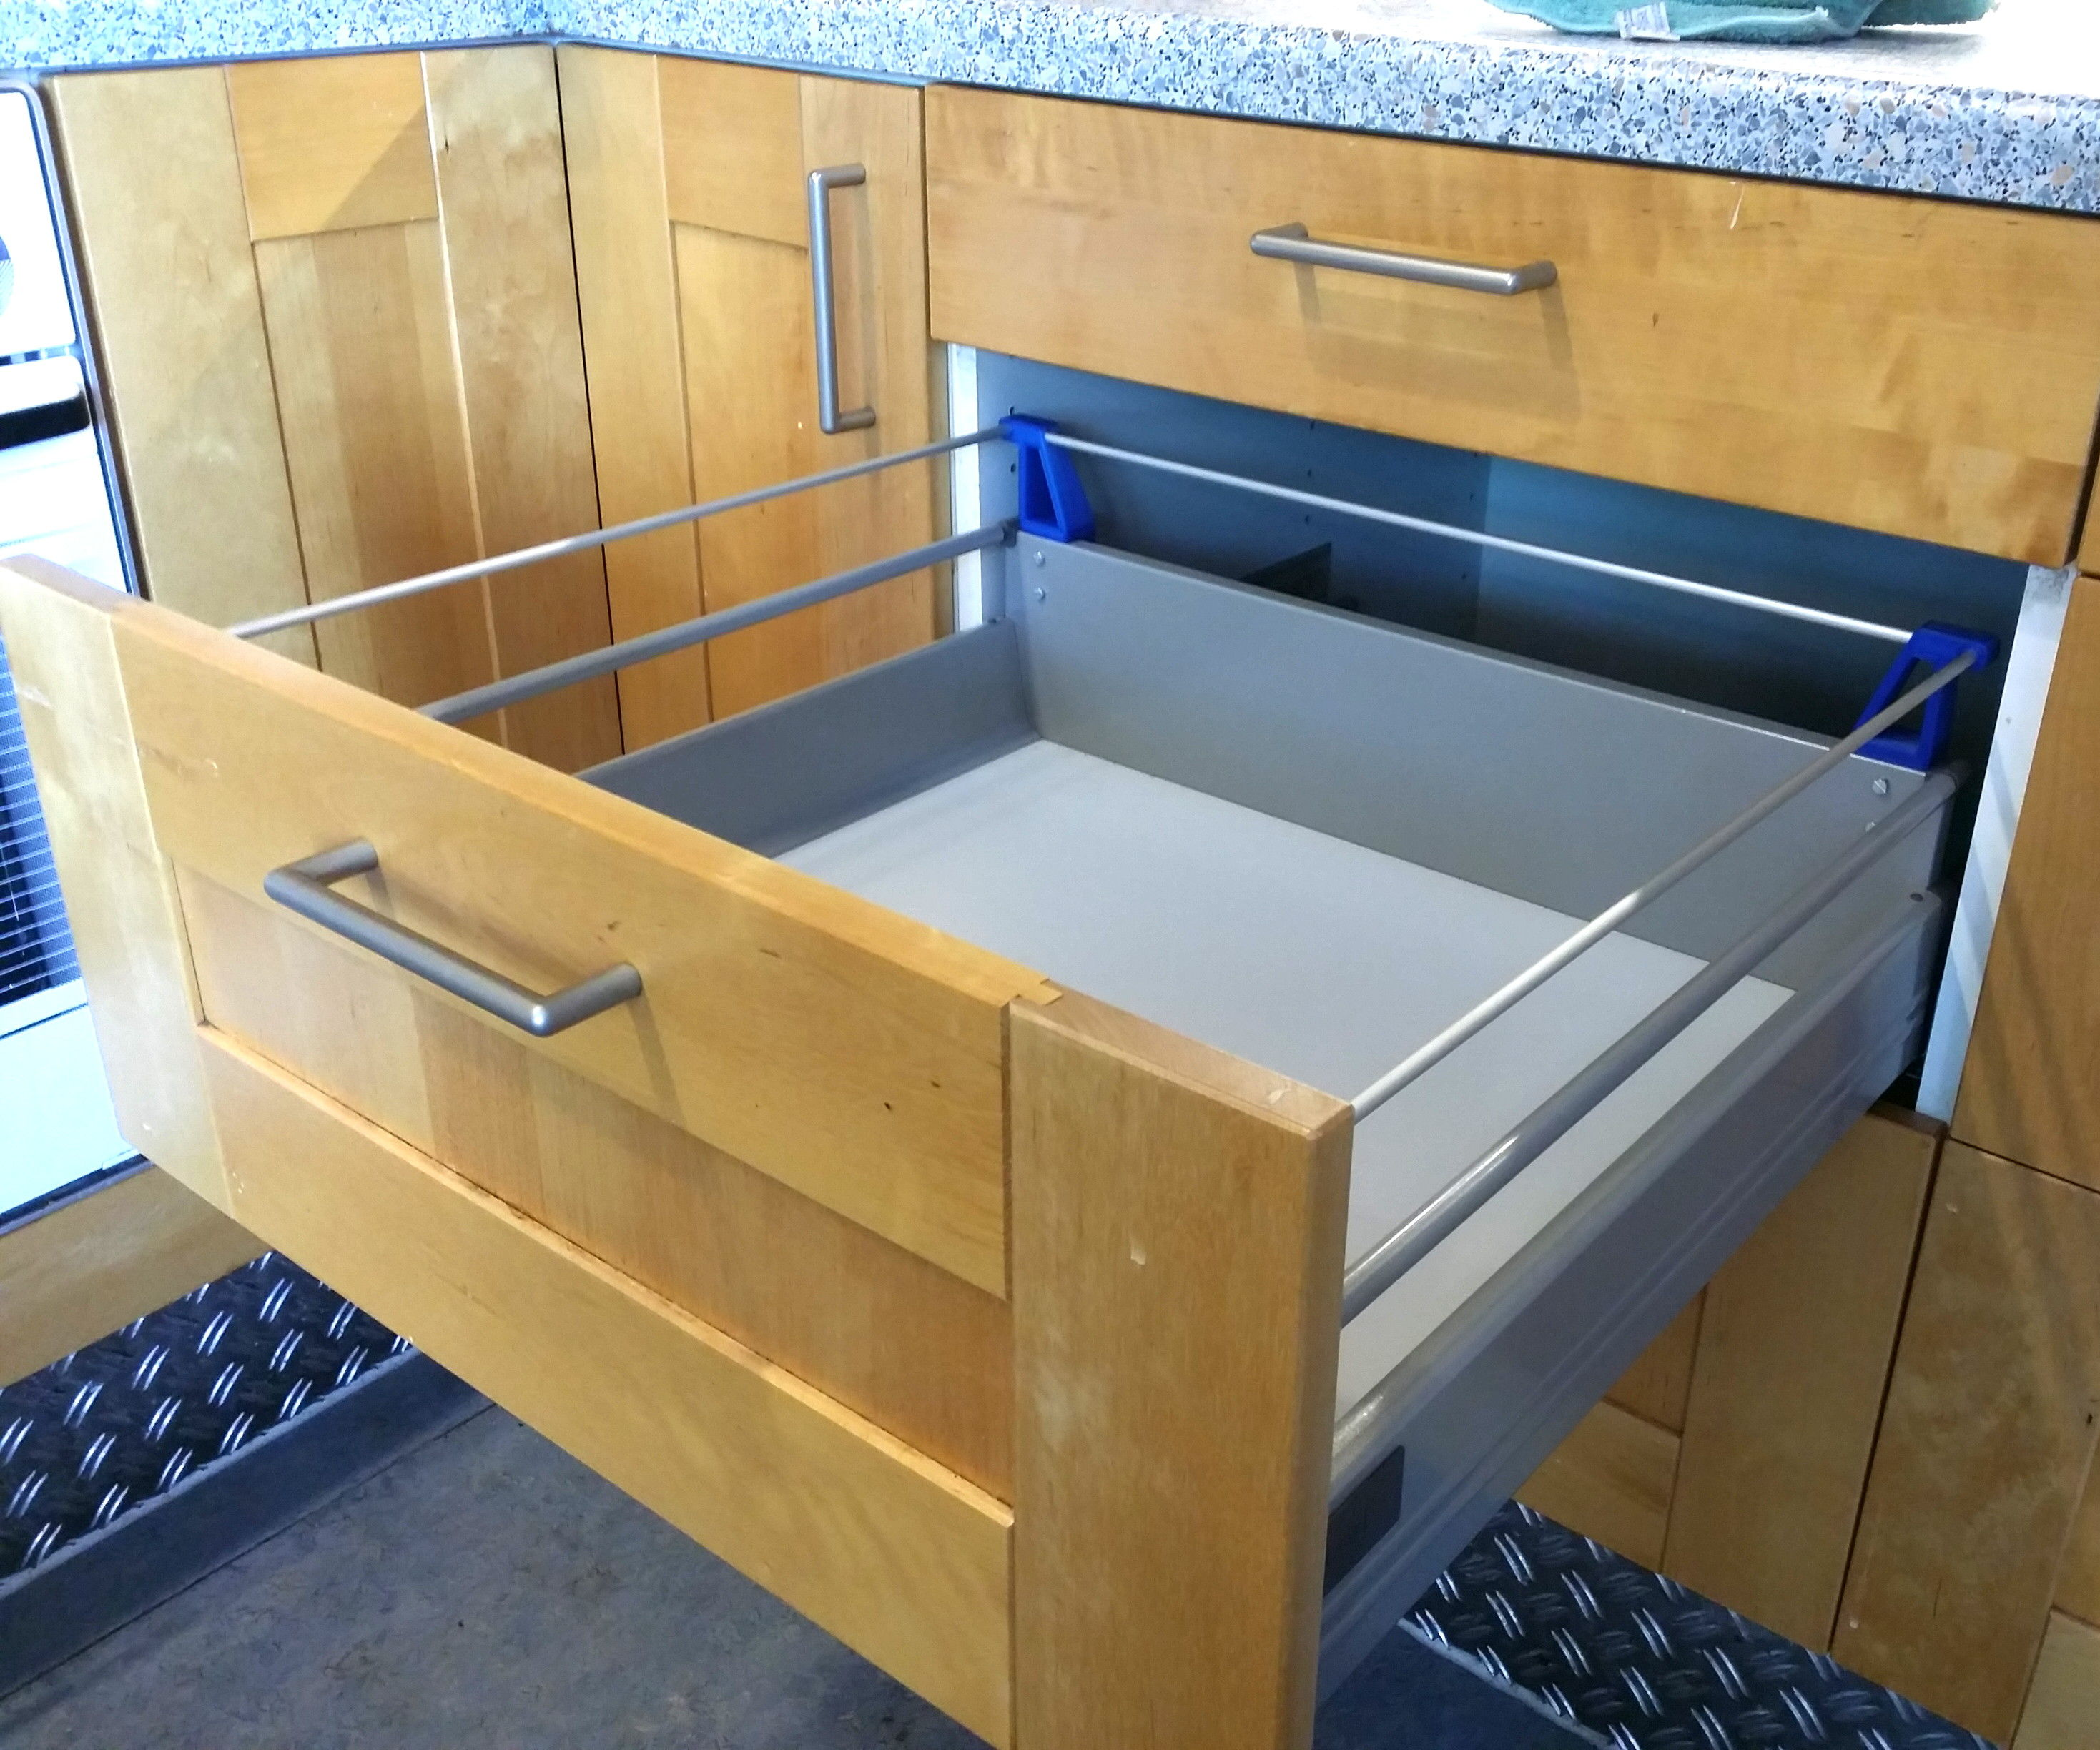 Ikea Kitchen Drawer Extension - With Printed Parts: 3 Steps ...